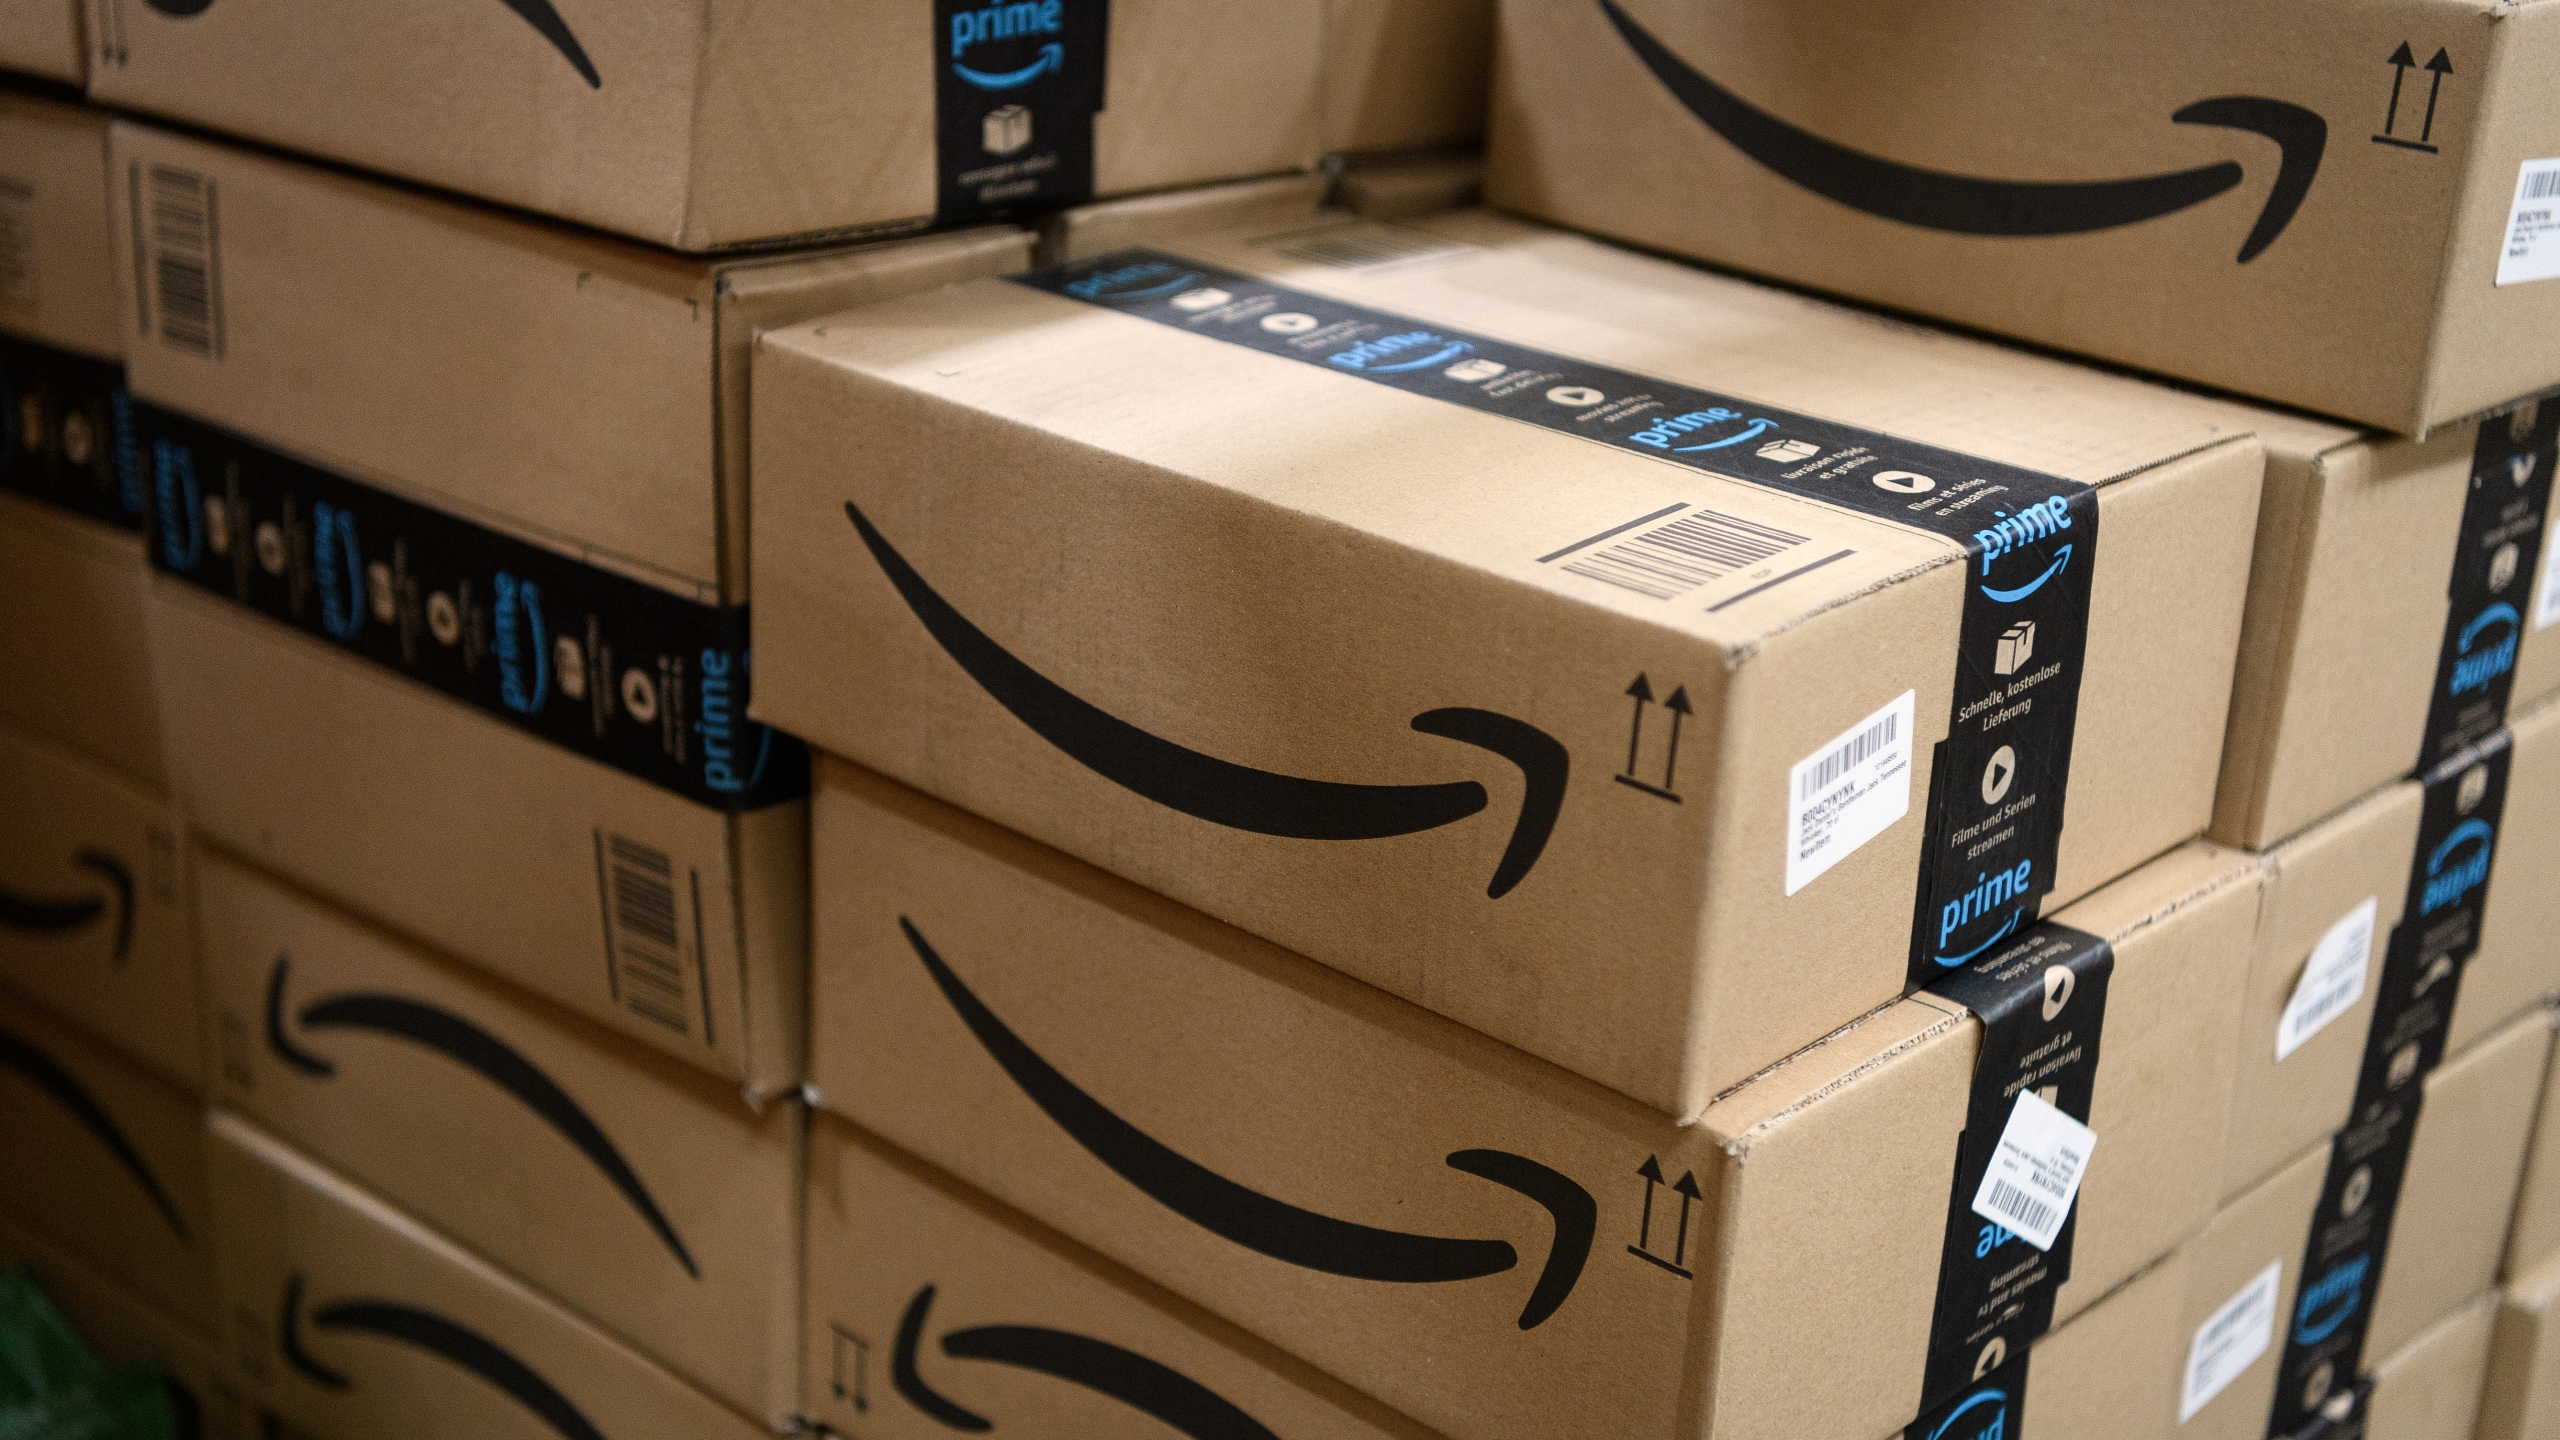 Amazon Prime packages are seen in this file photo. (Leon Neal/Getty Images)